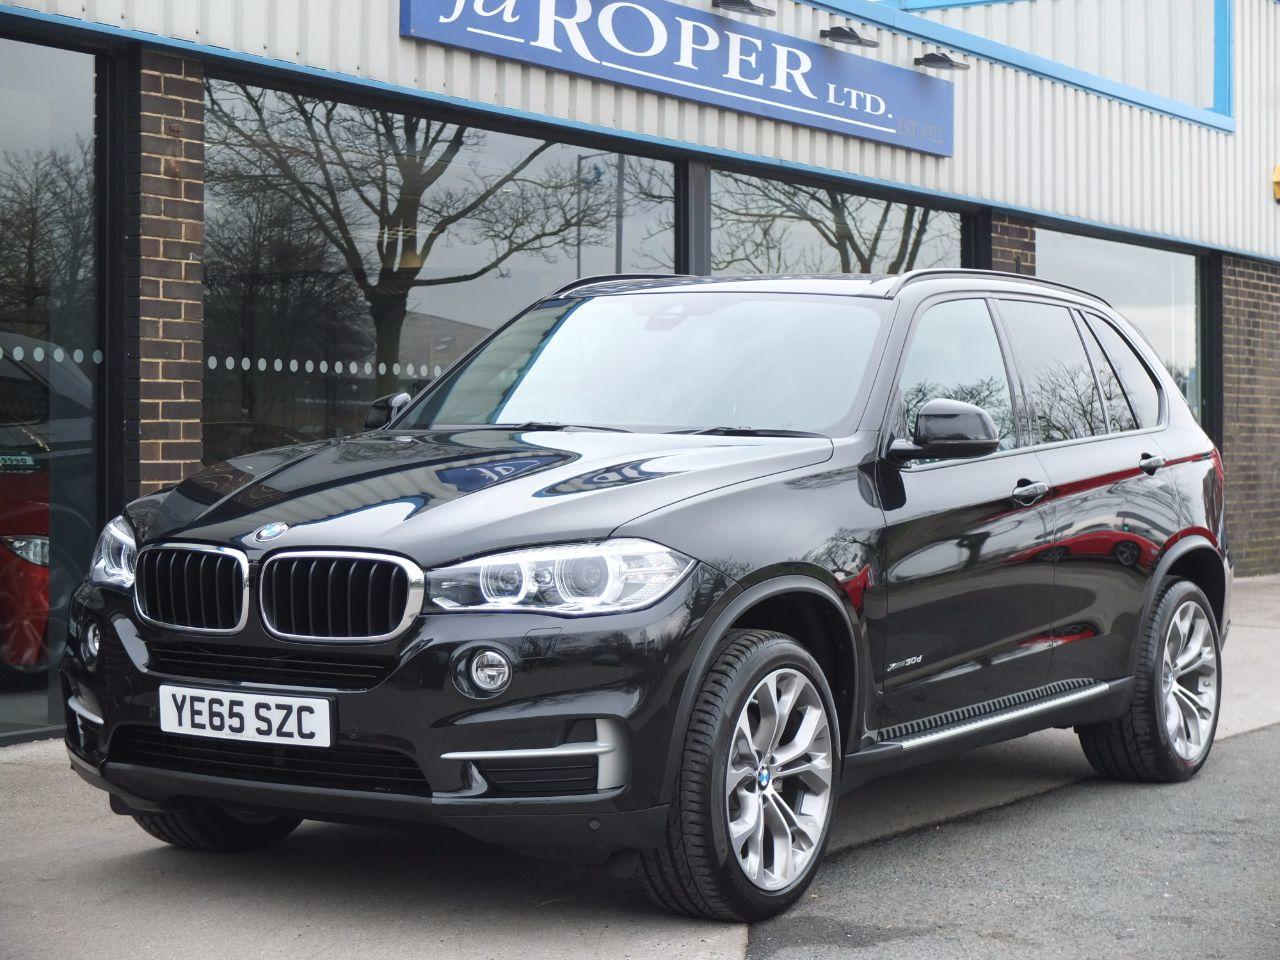 BMW X5 3.0 xDrive30d SE (Dynamic Package) Auto Estate Diesel Black Sapphire MetallicBMW X5 3.0 xDrive30d SE (Dynamic Package) Auto Estate Diesel Black Sapphire Metallic at fa Roper Ltd Bradford